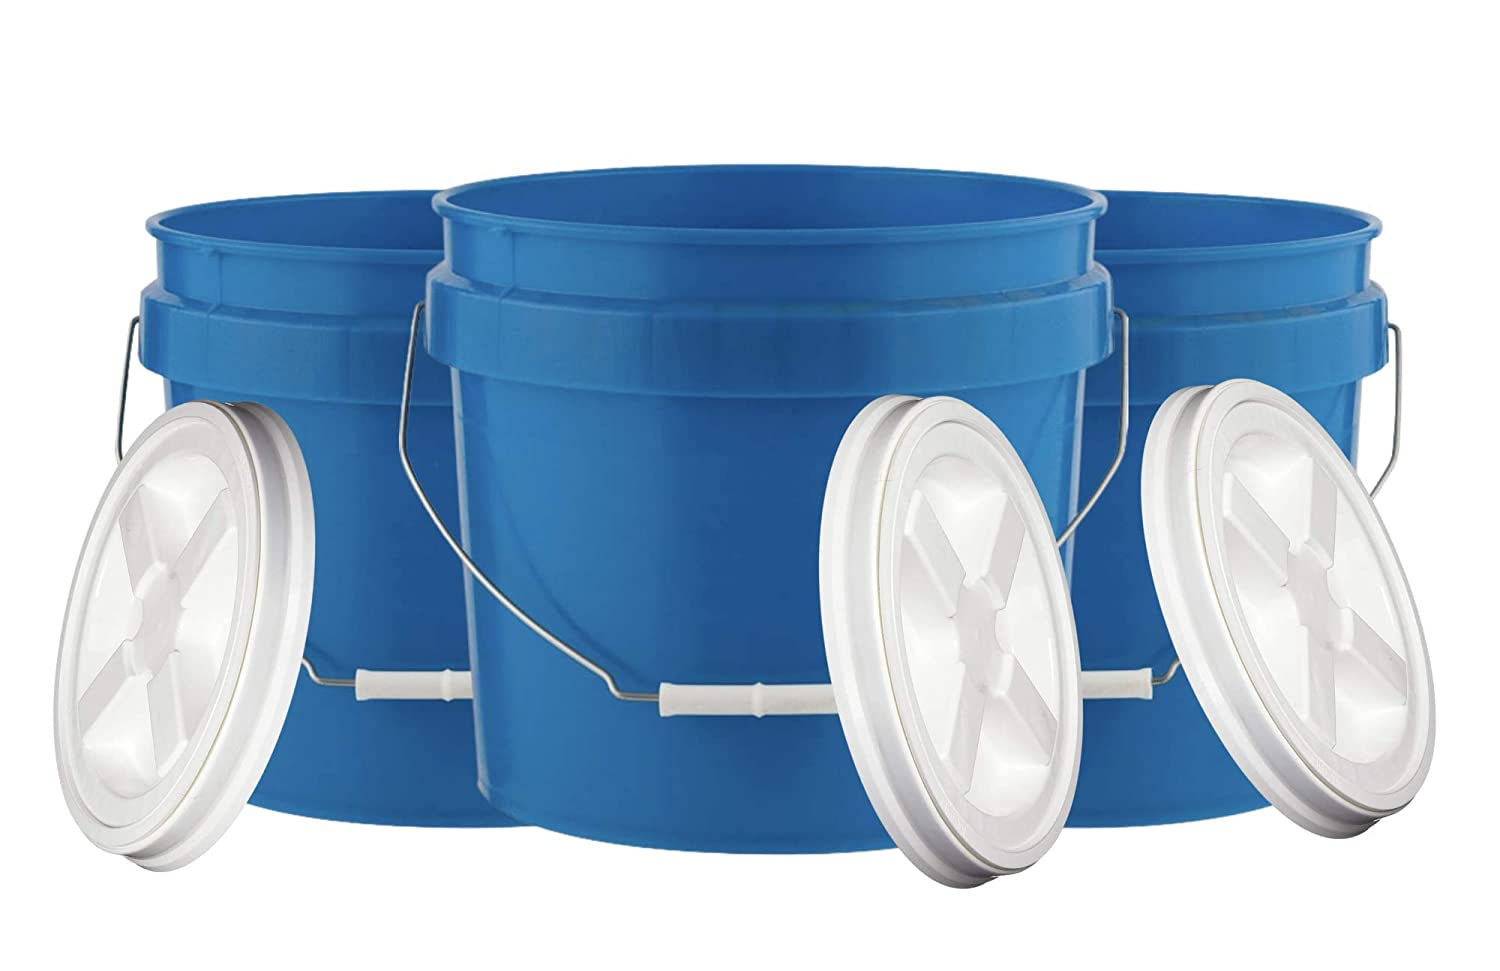 House outlet Naturals 3.5 Gallon Food Grade Max 48% OFF with Pail Gamma Bucket Scre